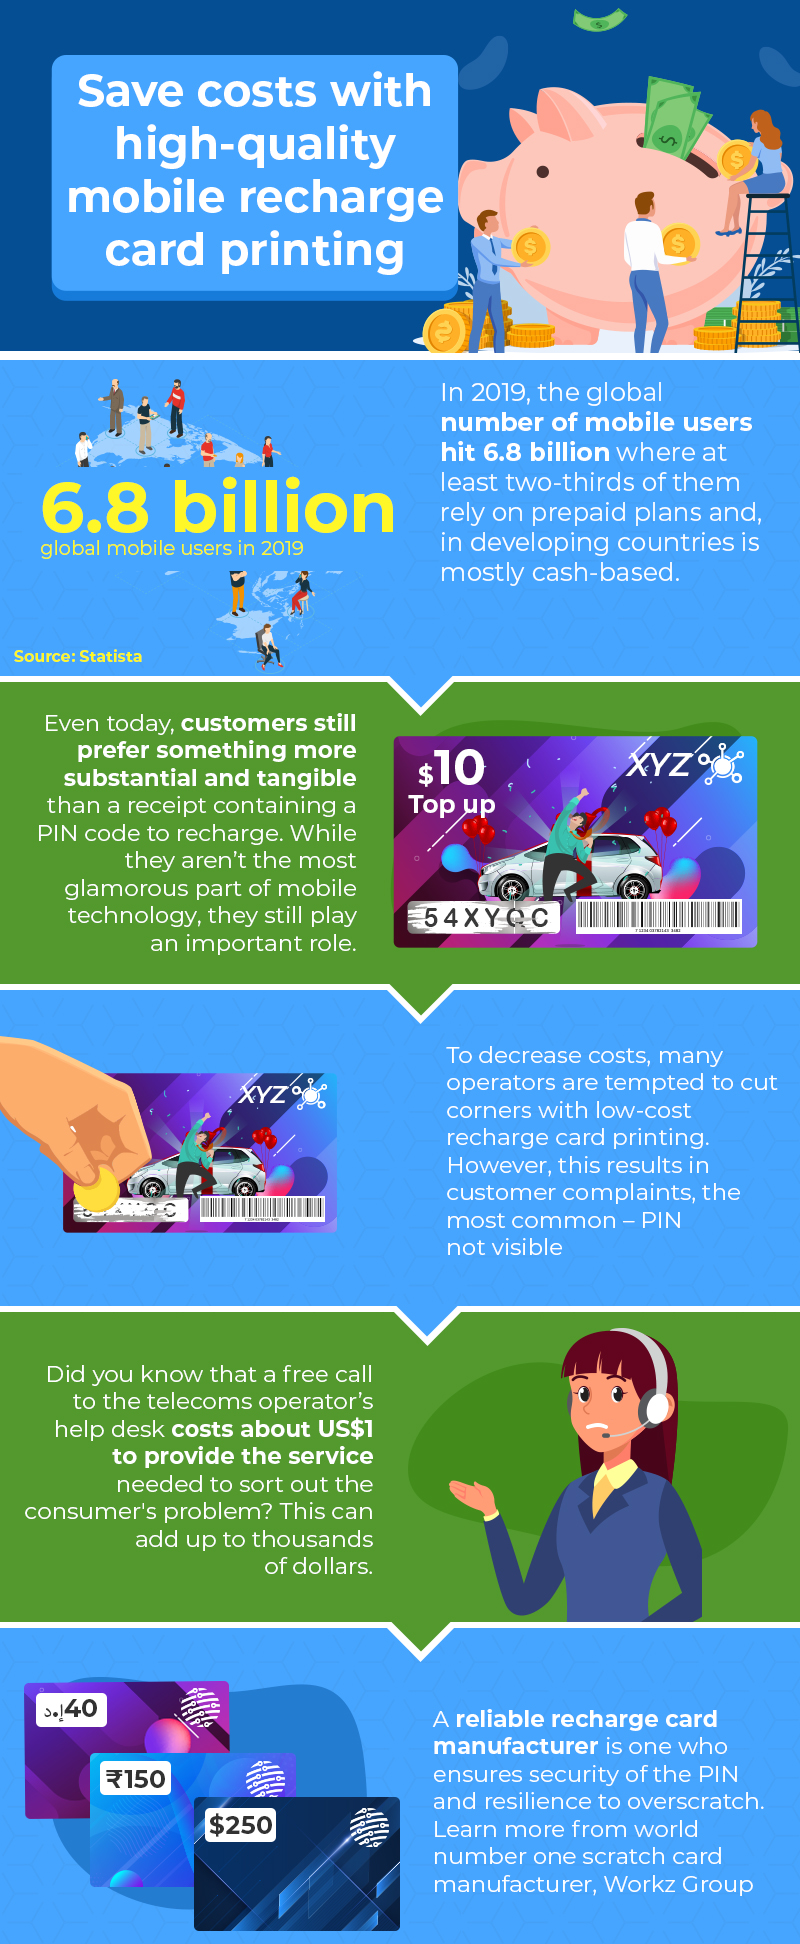 Save Costs with High-Quality Mobile Recharge Card Printing - TechPrate